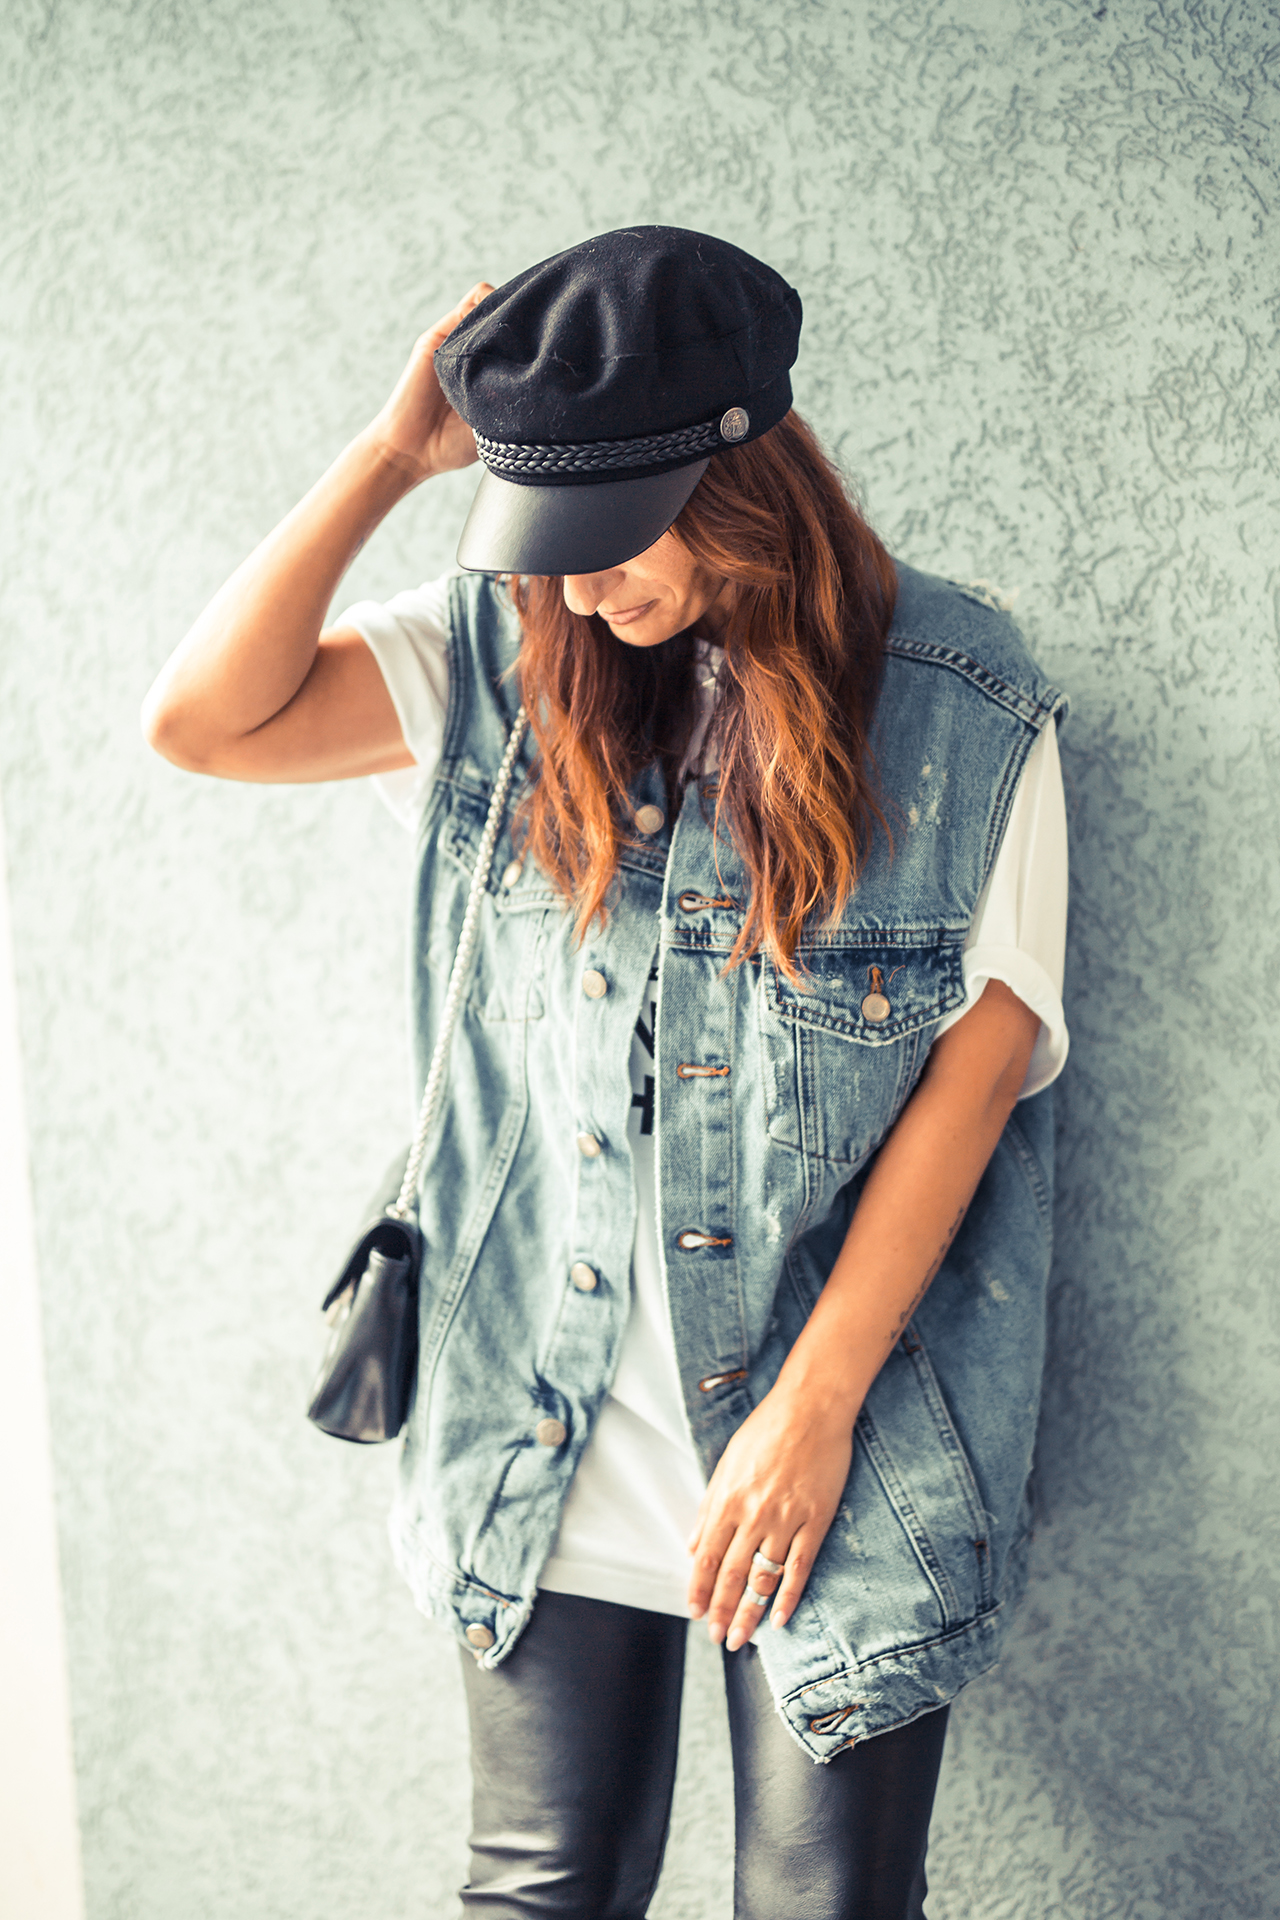 OUTFIT | Streetstyle, Denim Jacket, Shirt and Leather High Heels